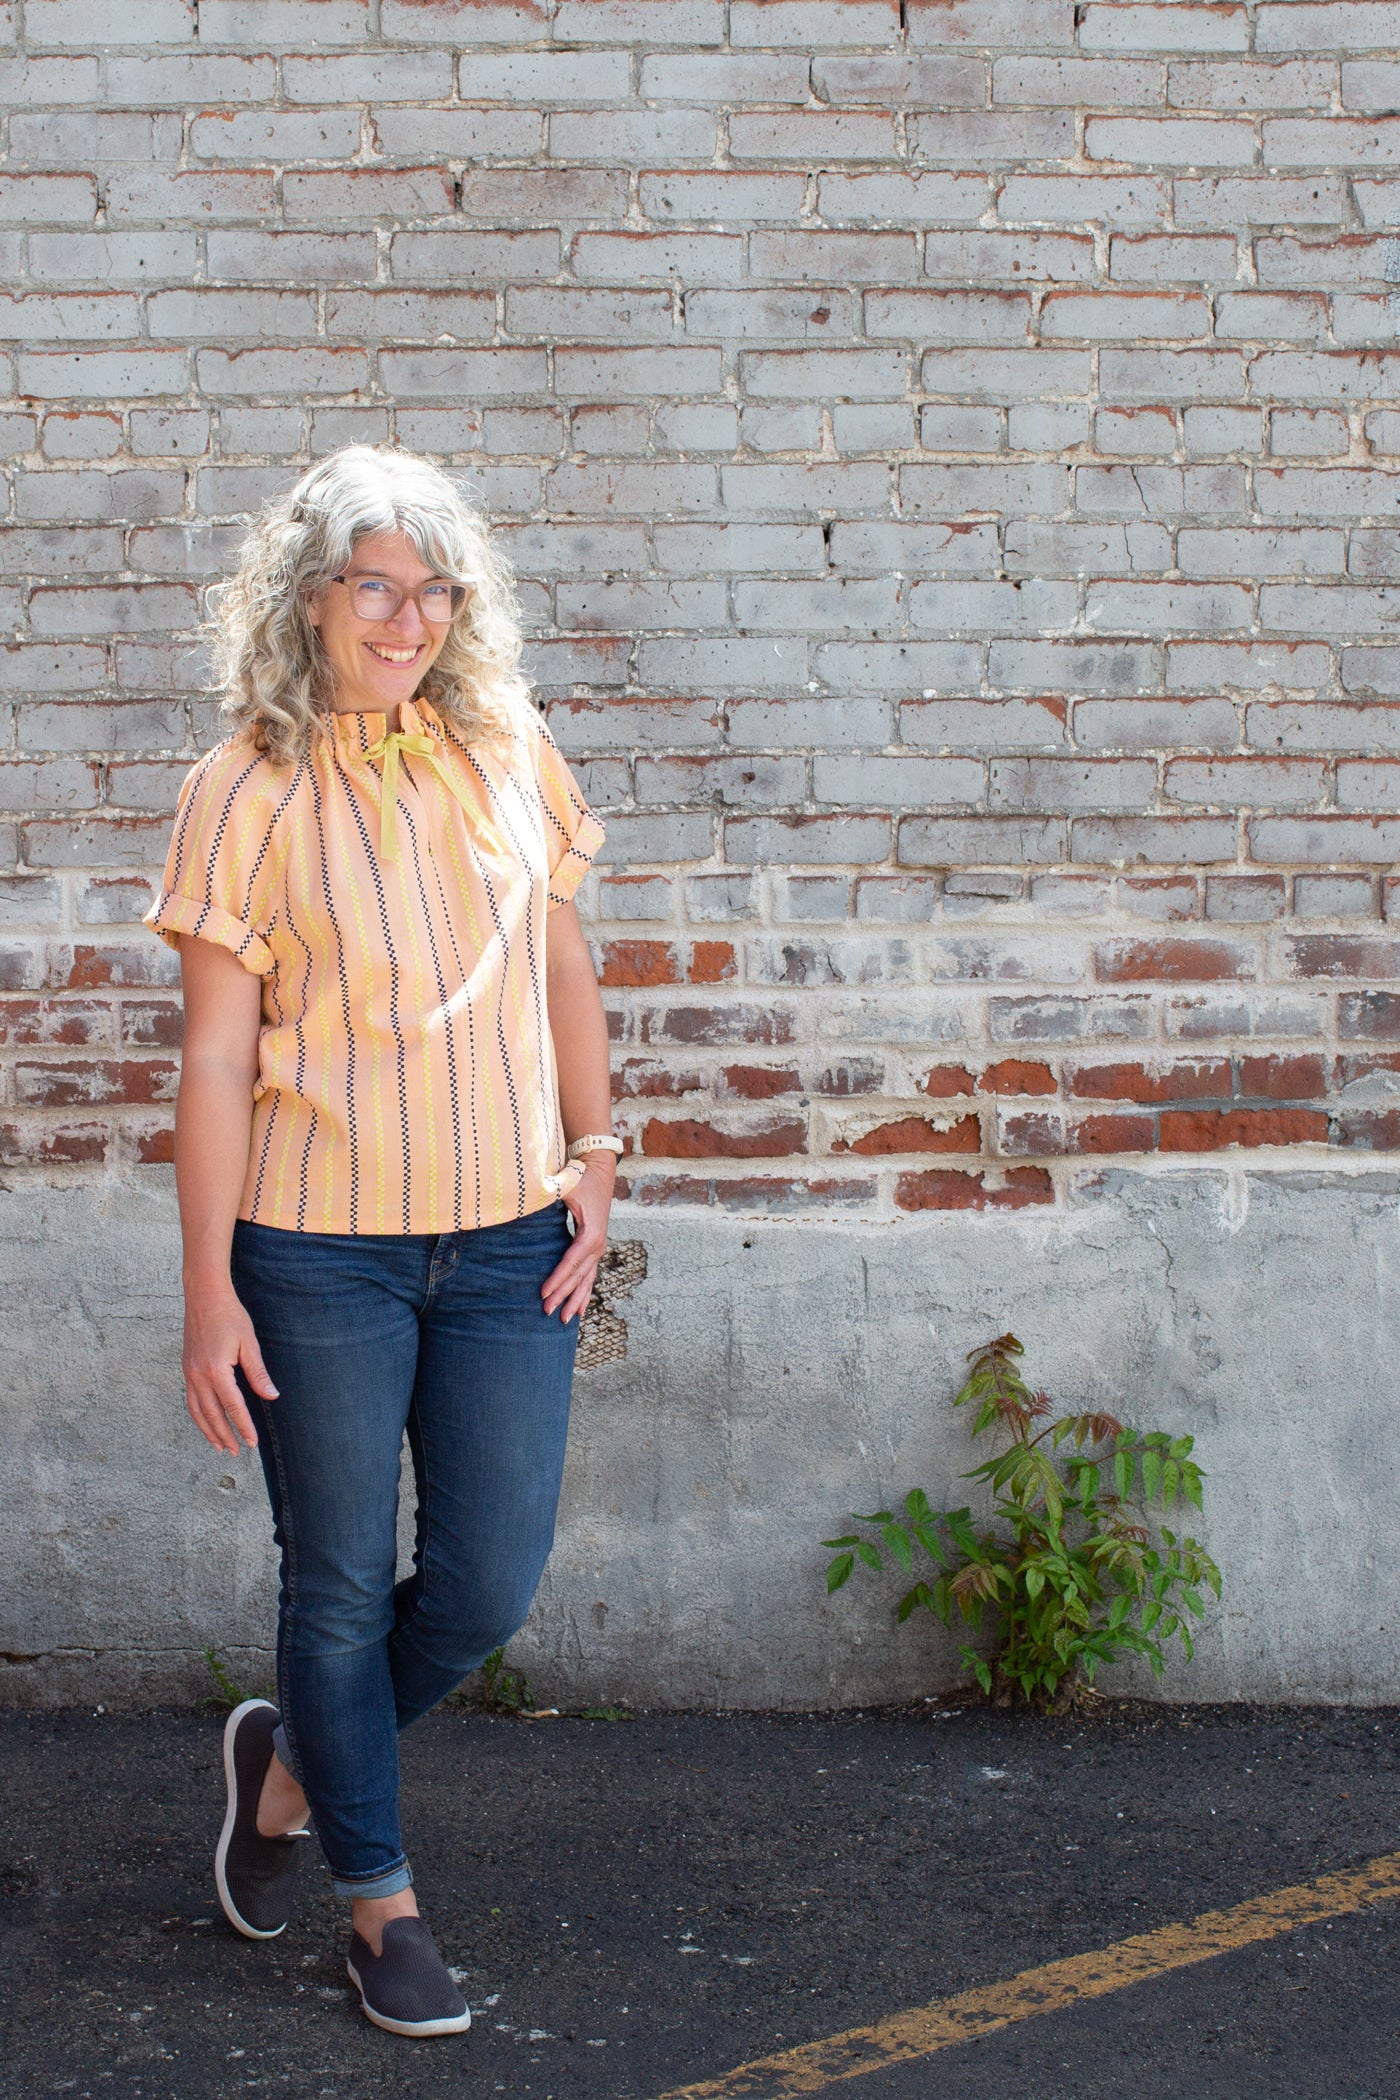 Jaime standing in front of a white washed  brick wall, turned slightly to an angle, facing the camera smiling.  Jaime is wearing a peach vertical striped shirt with blue jeans.